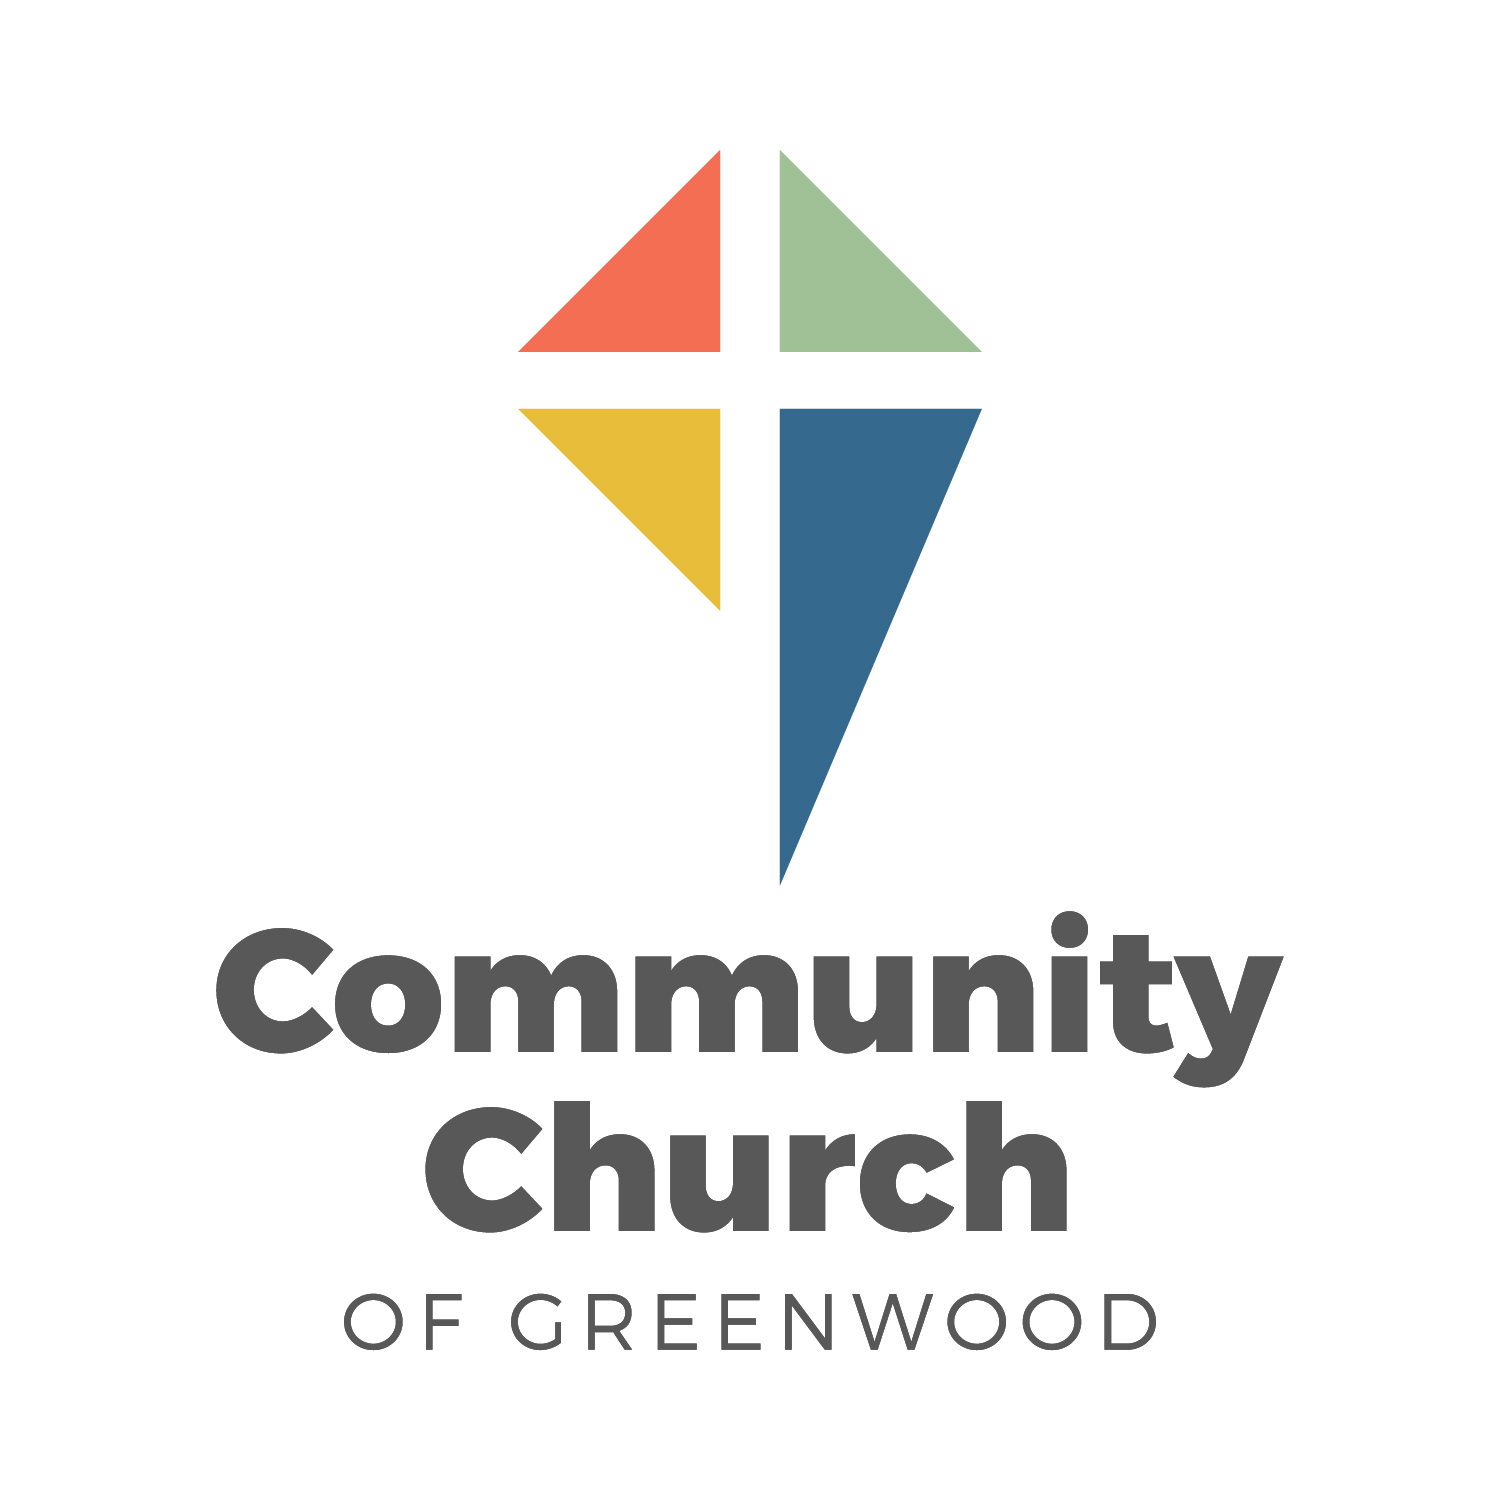 Community Church of Greenwood